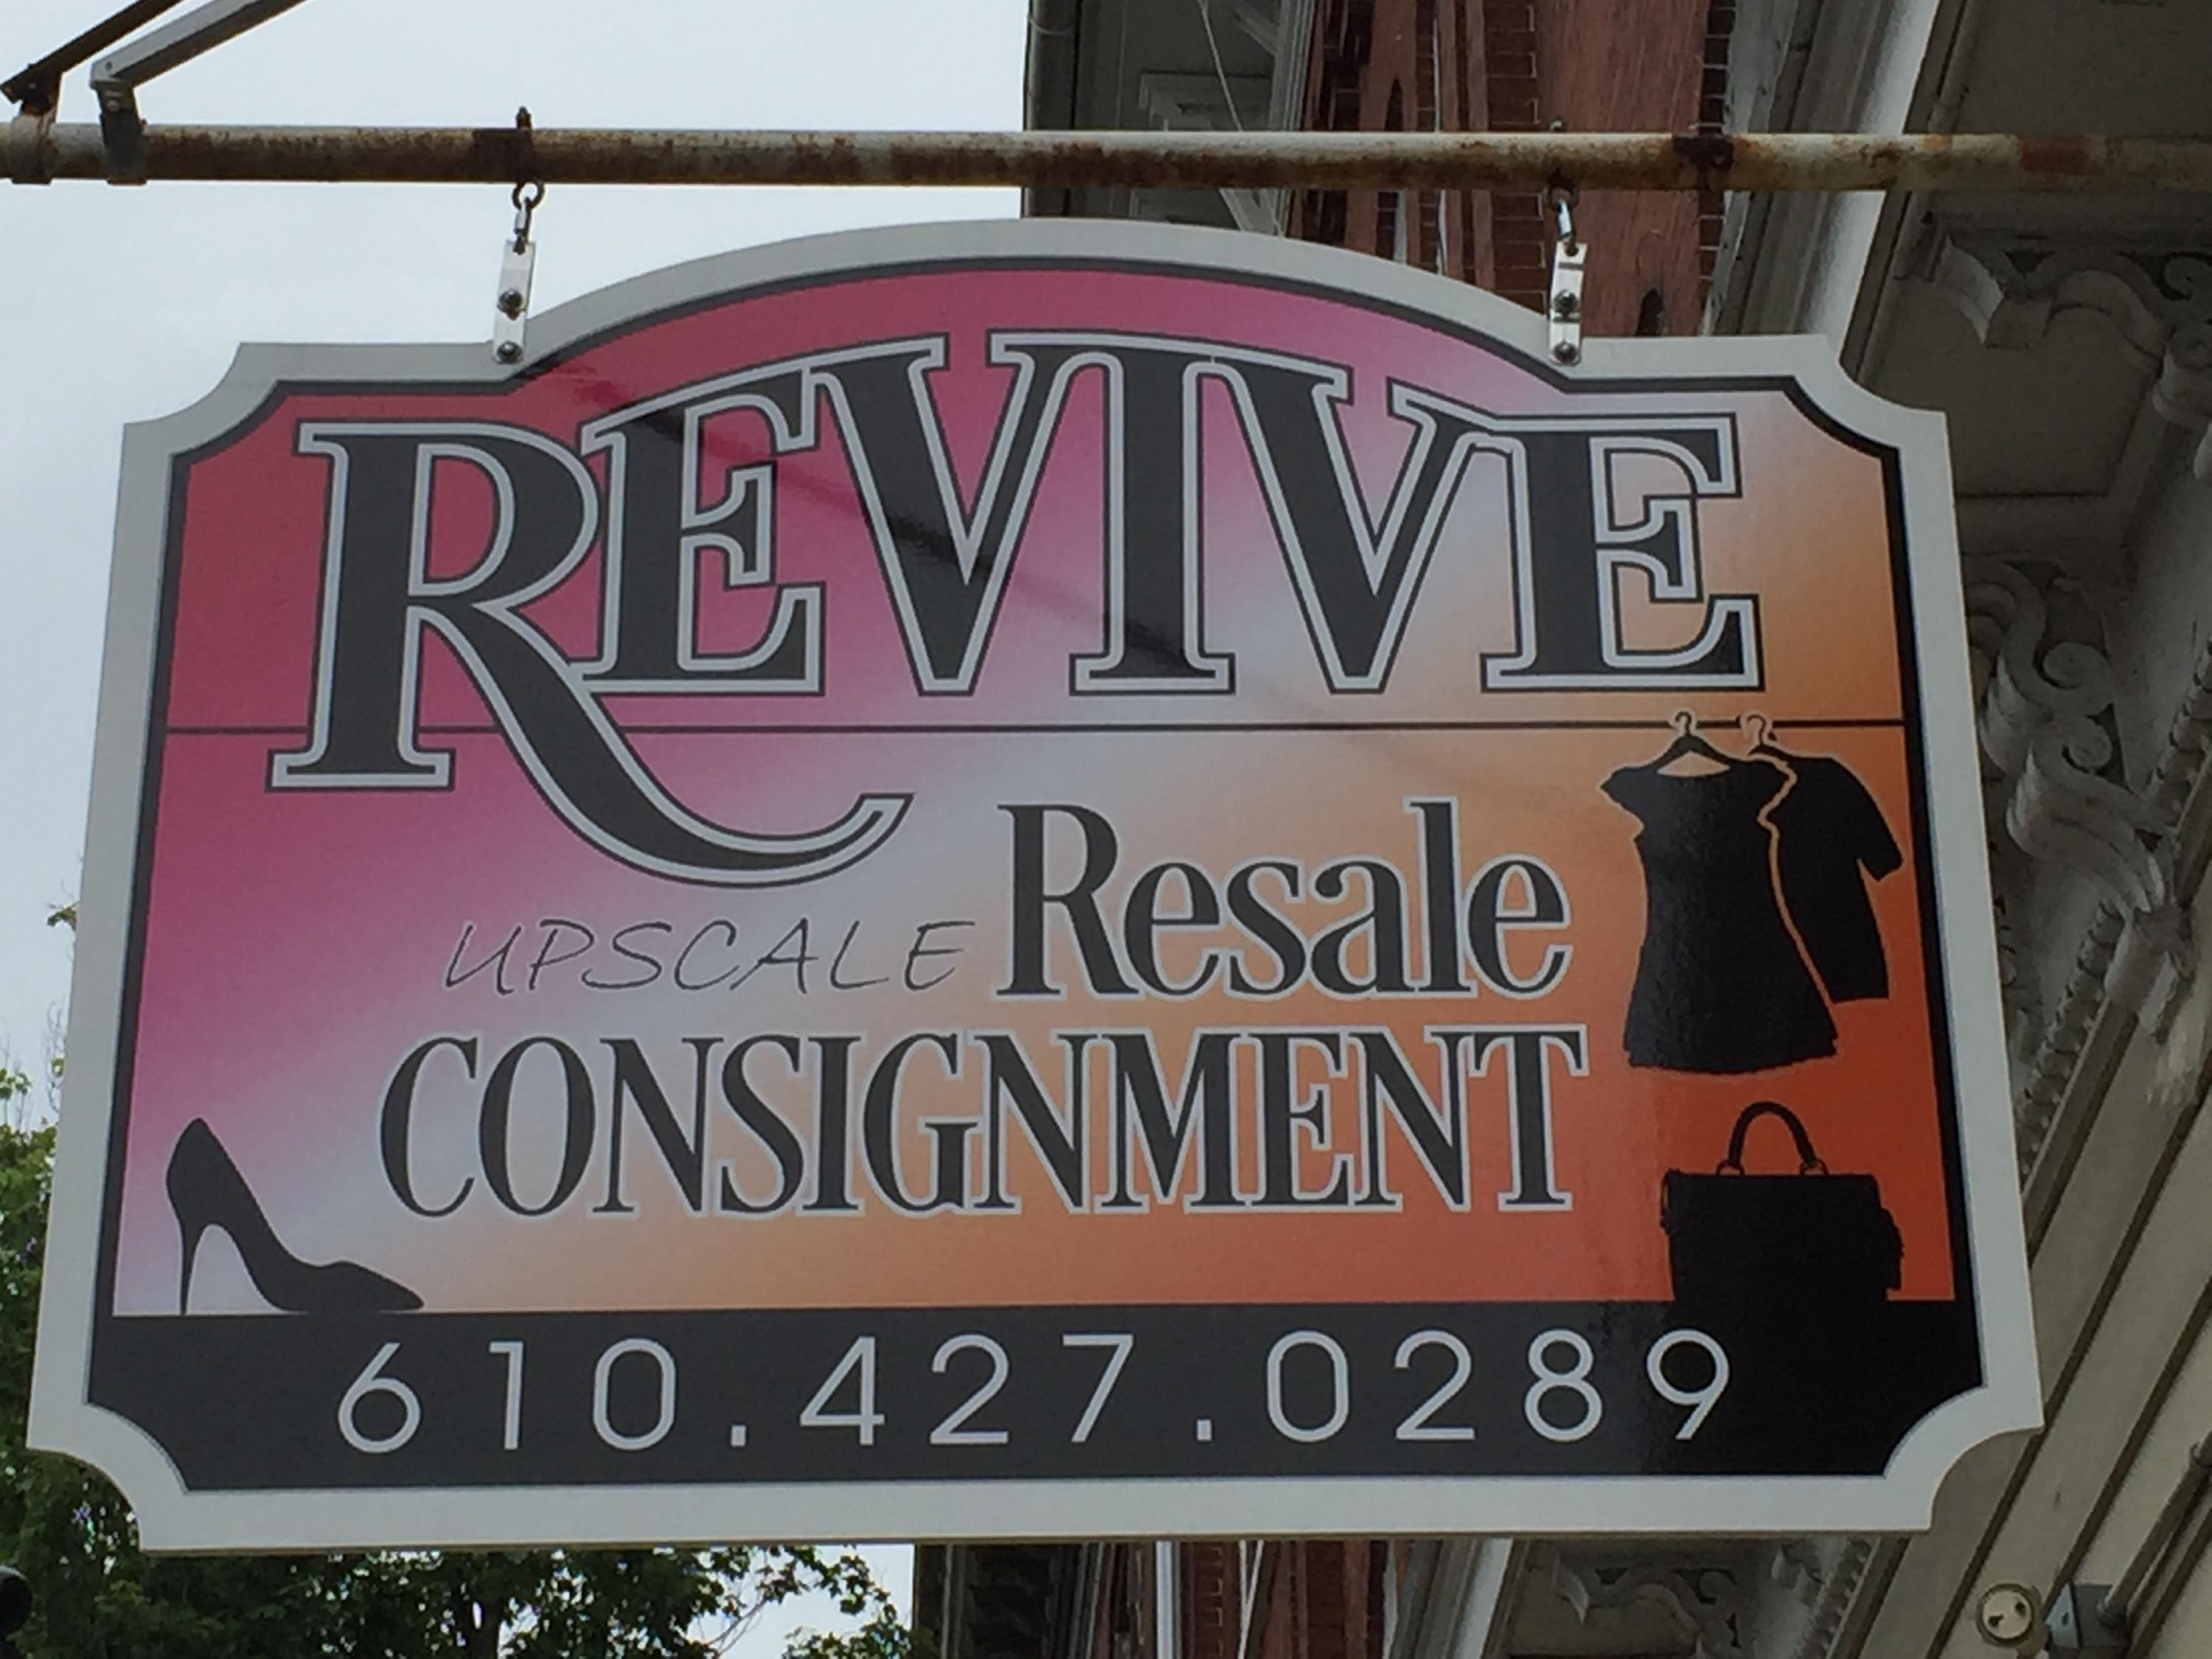 Revive Upscale Resale Consignment image 1